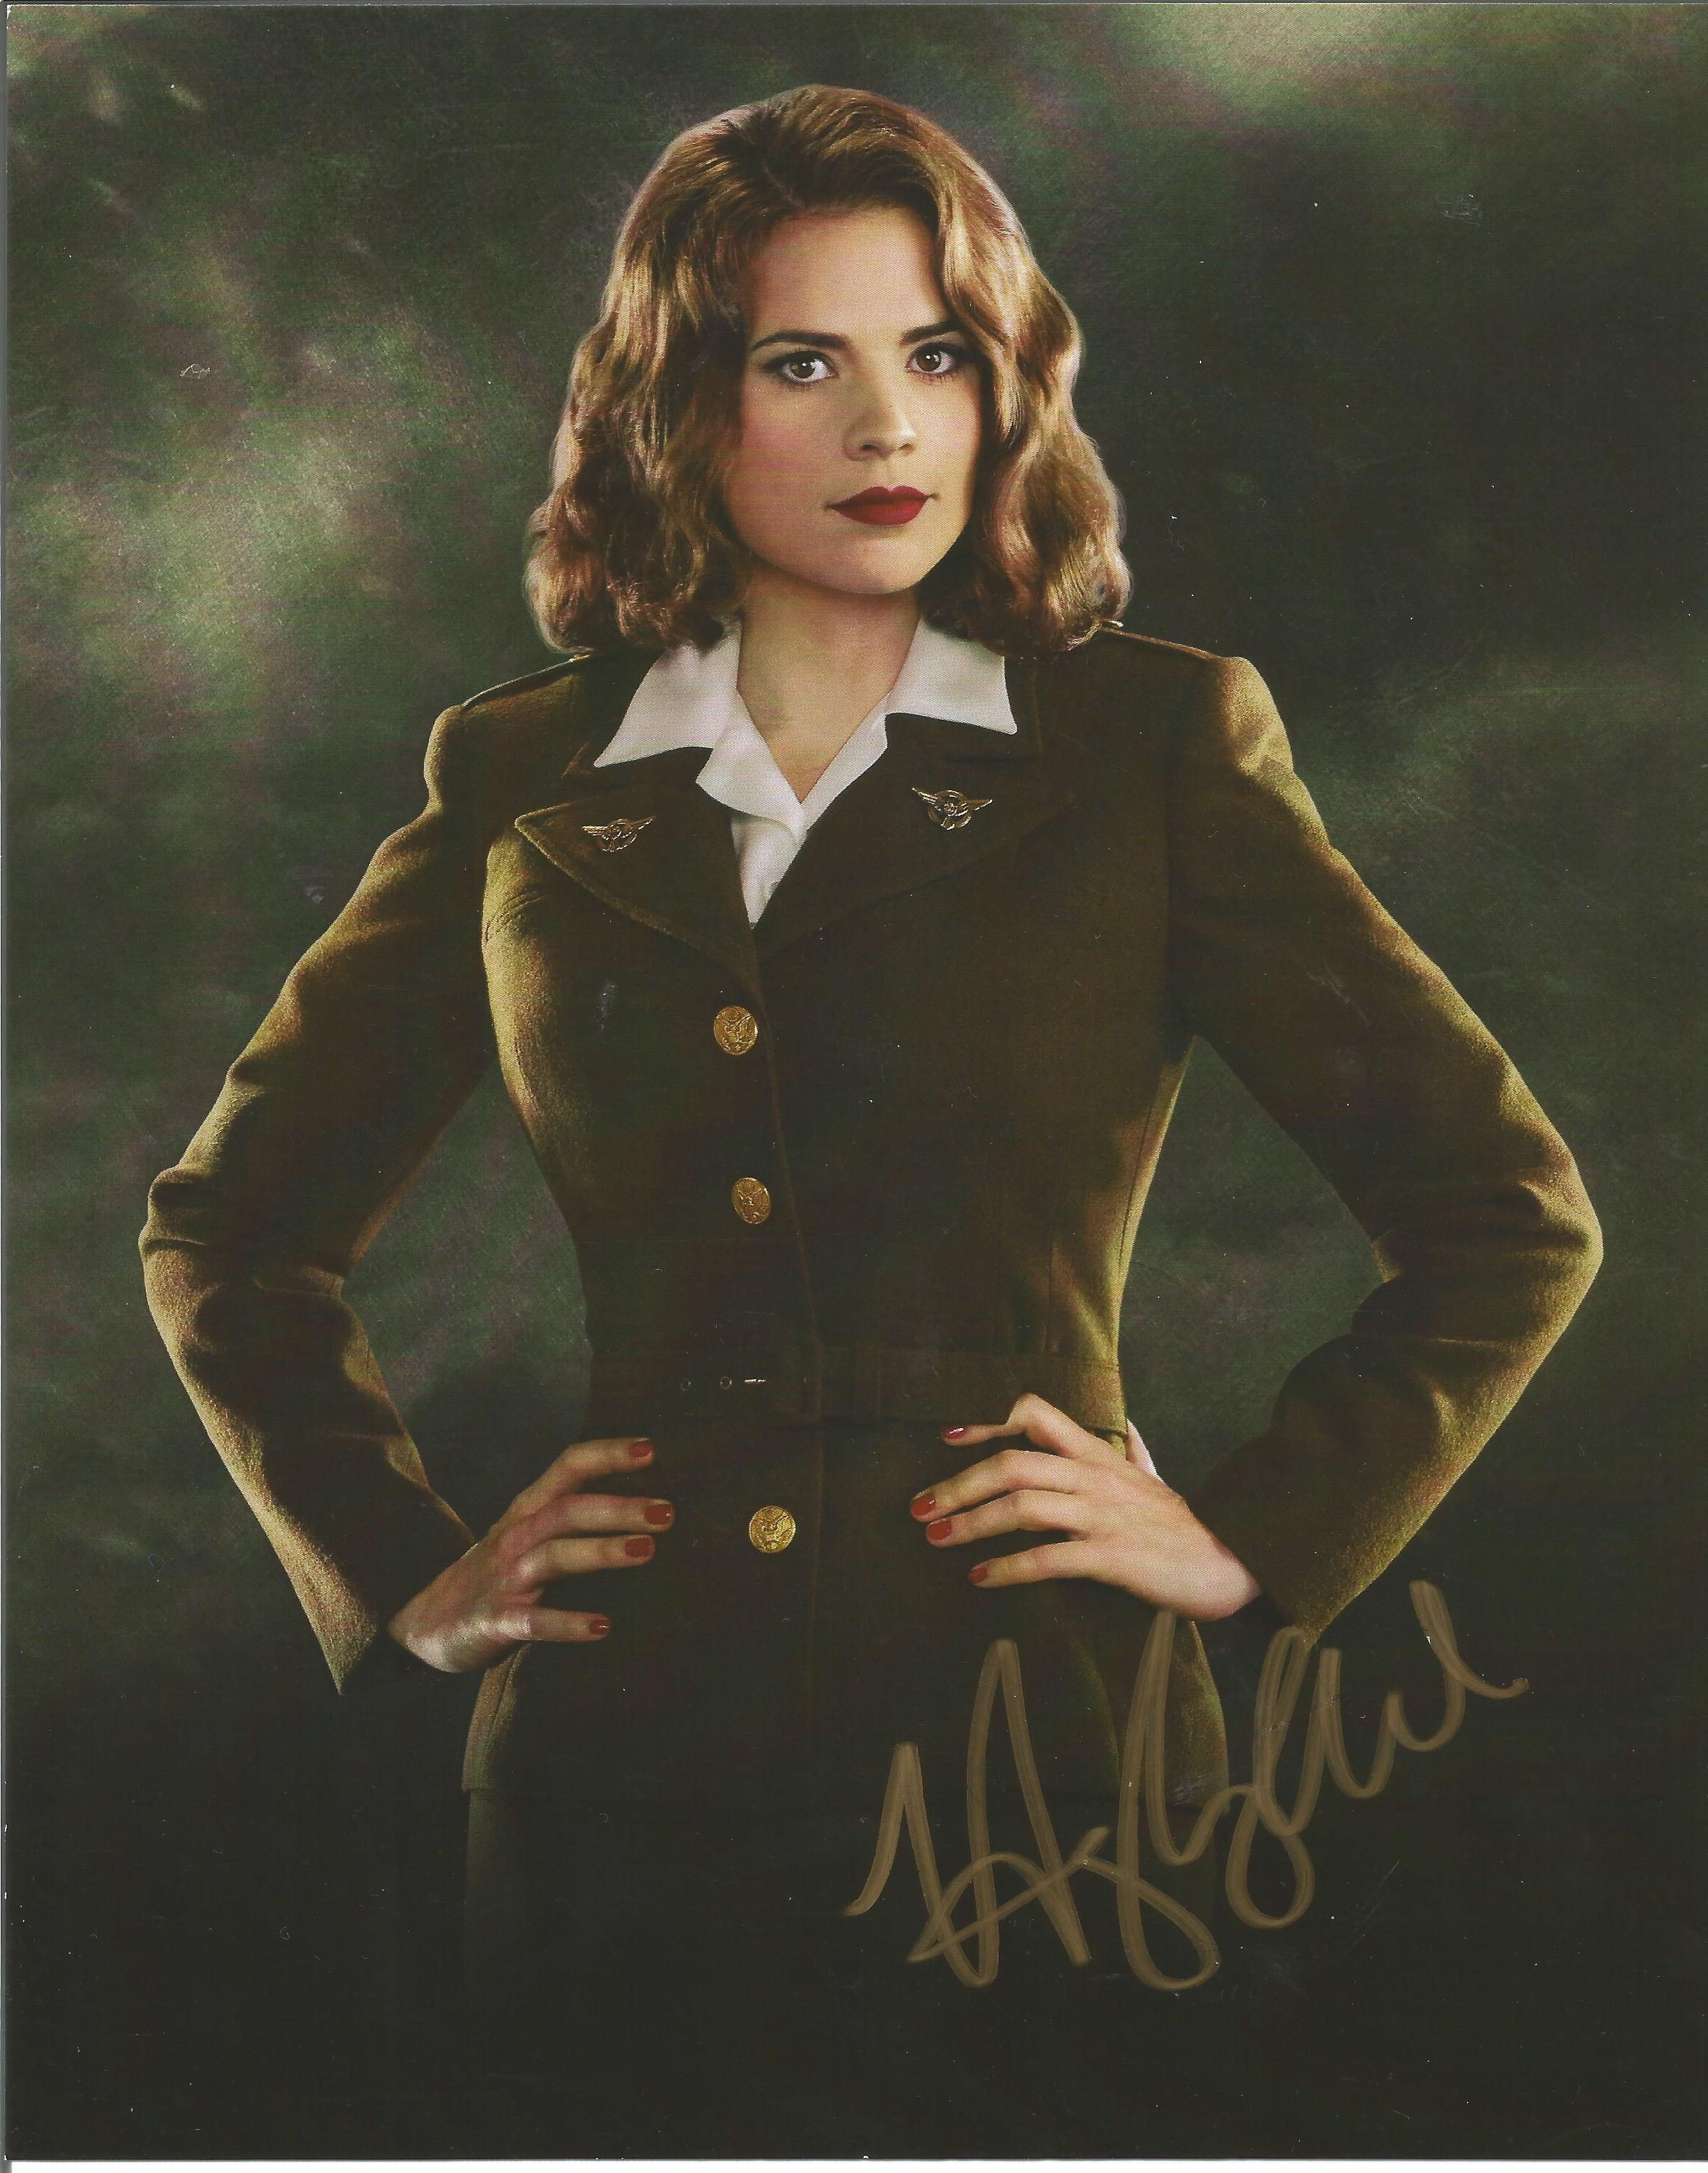 Hayley Atwell signed 10x8 colour photograph pictured as she plays her role as Peggy Carter in the